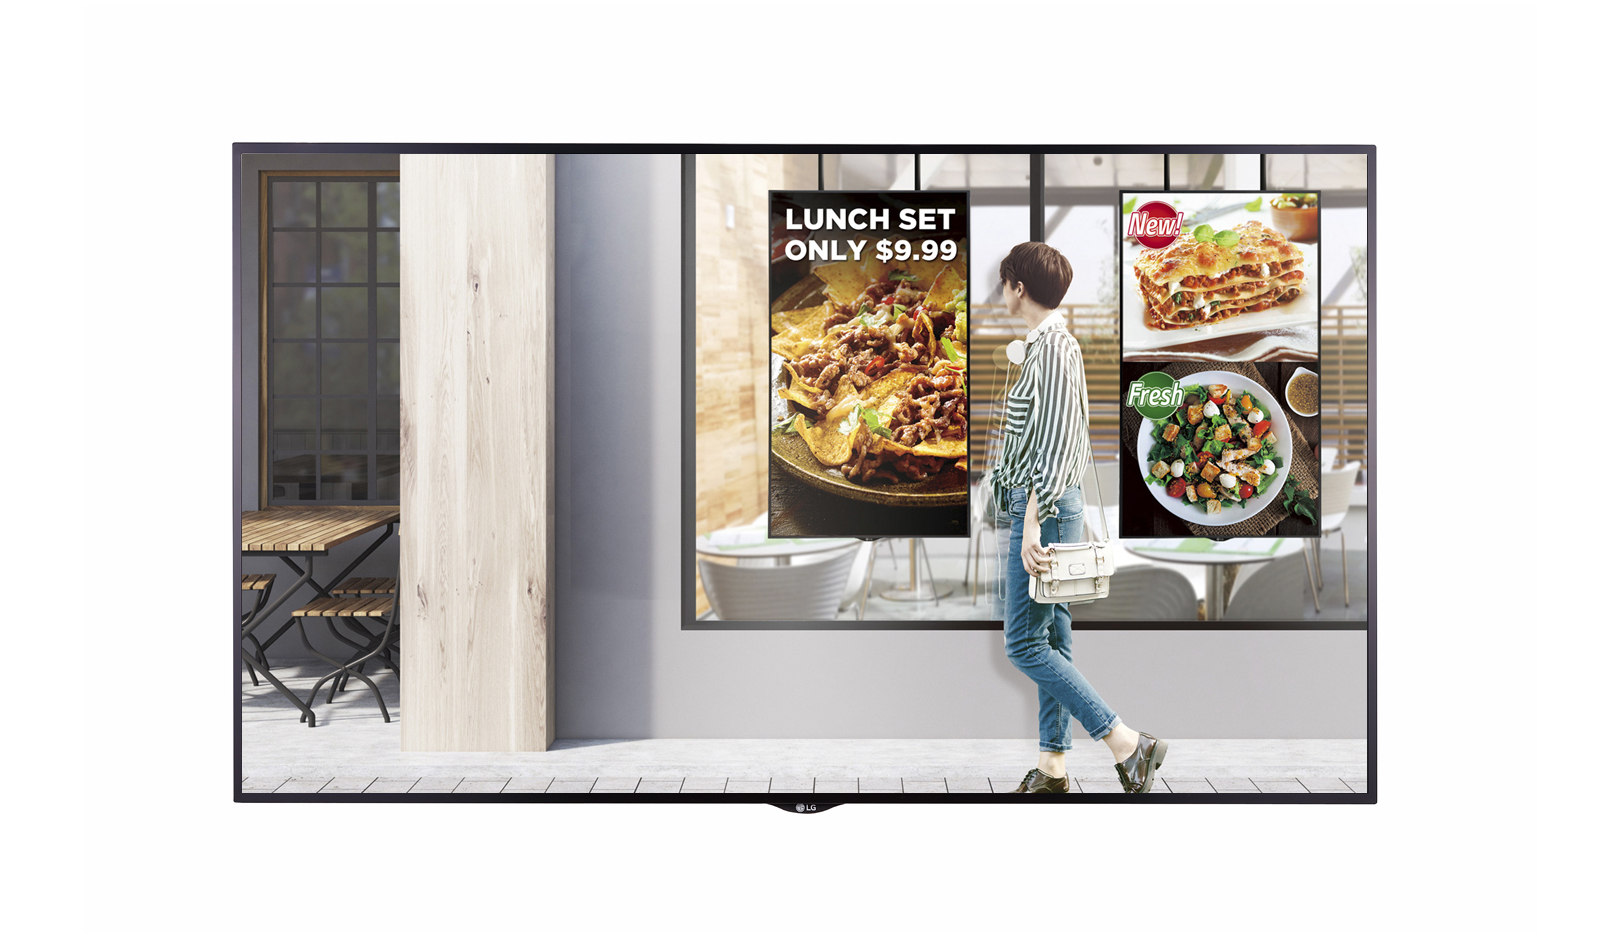 Monitors LG XS2E 55inHigh Bright Signage Display